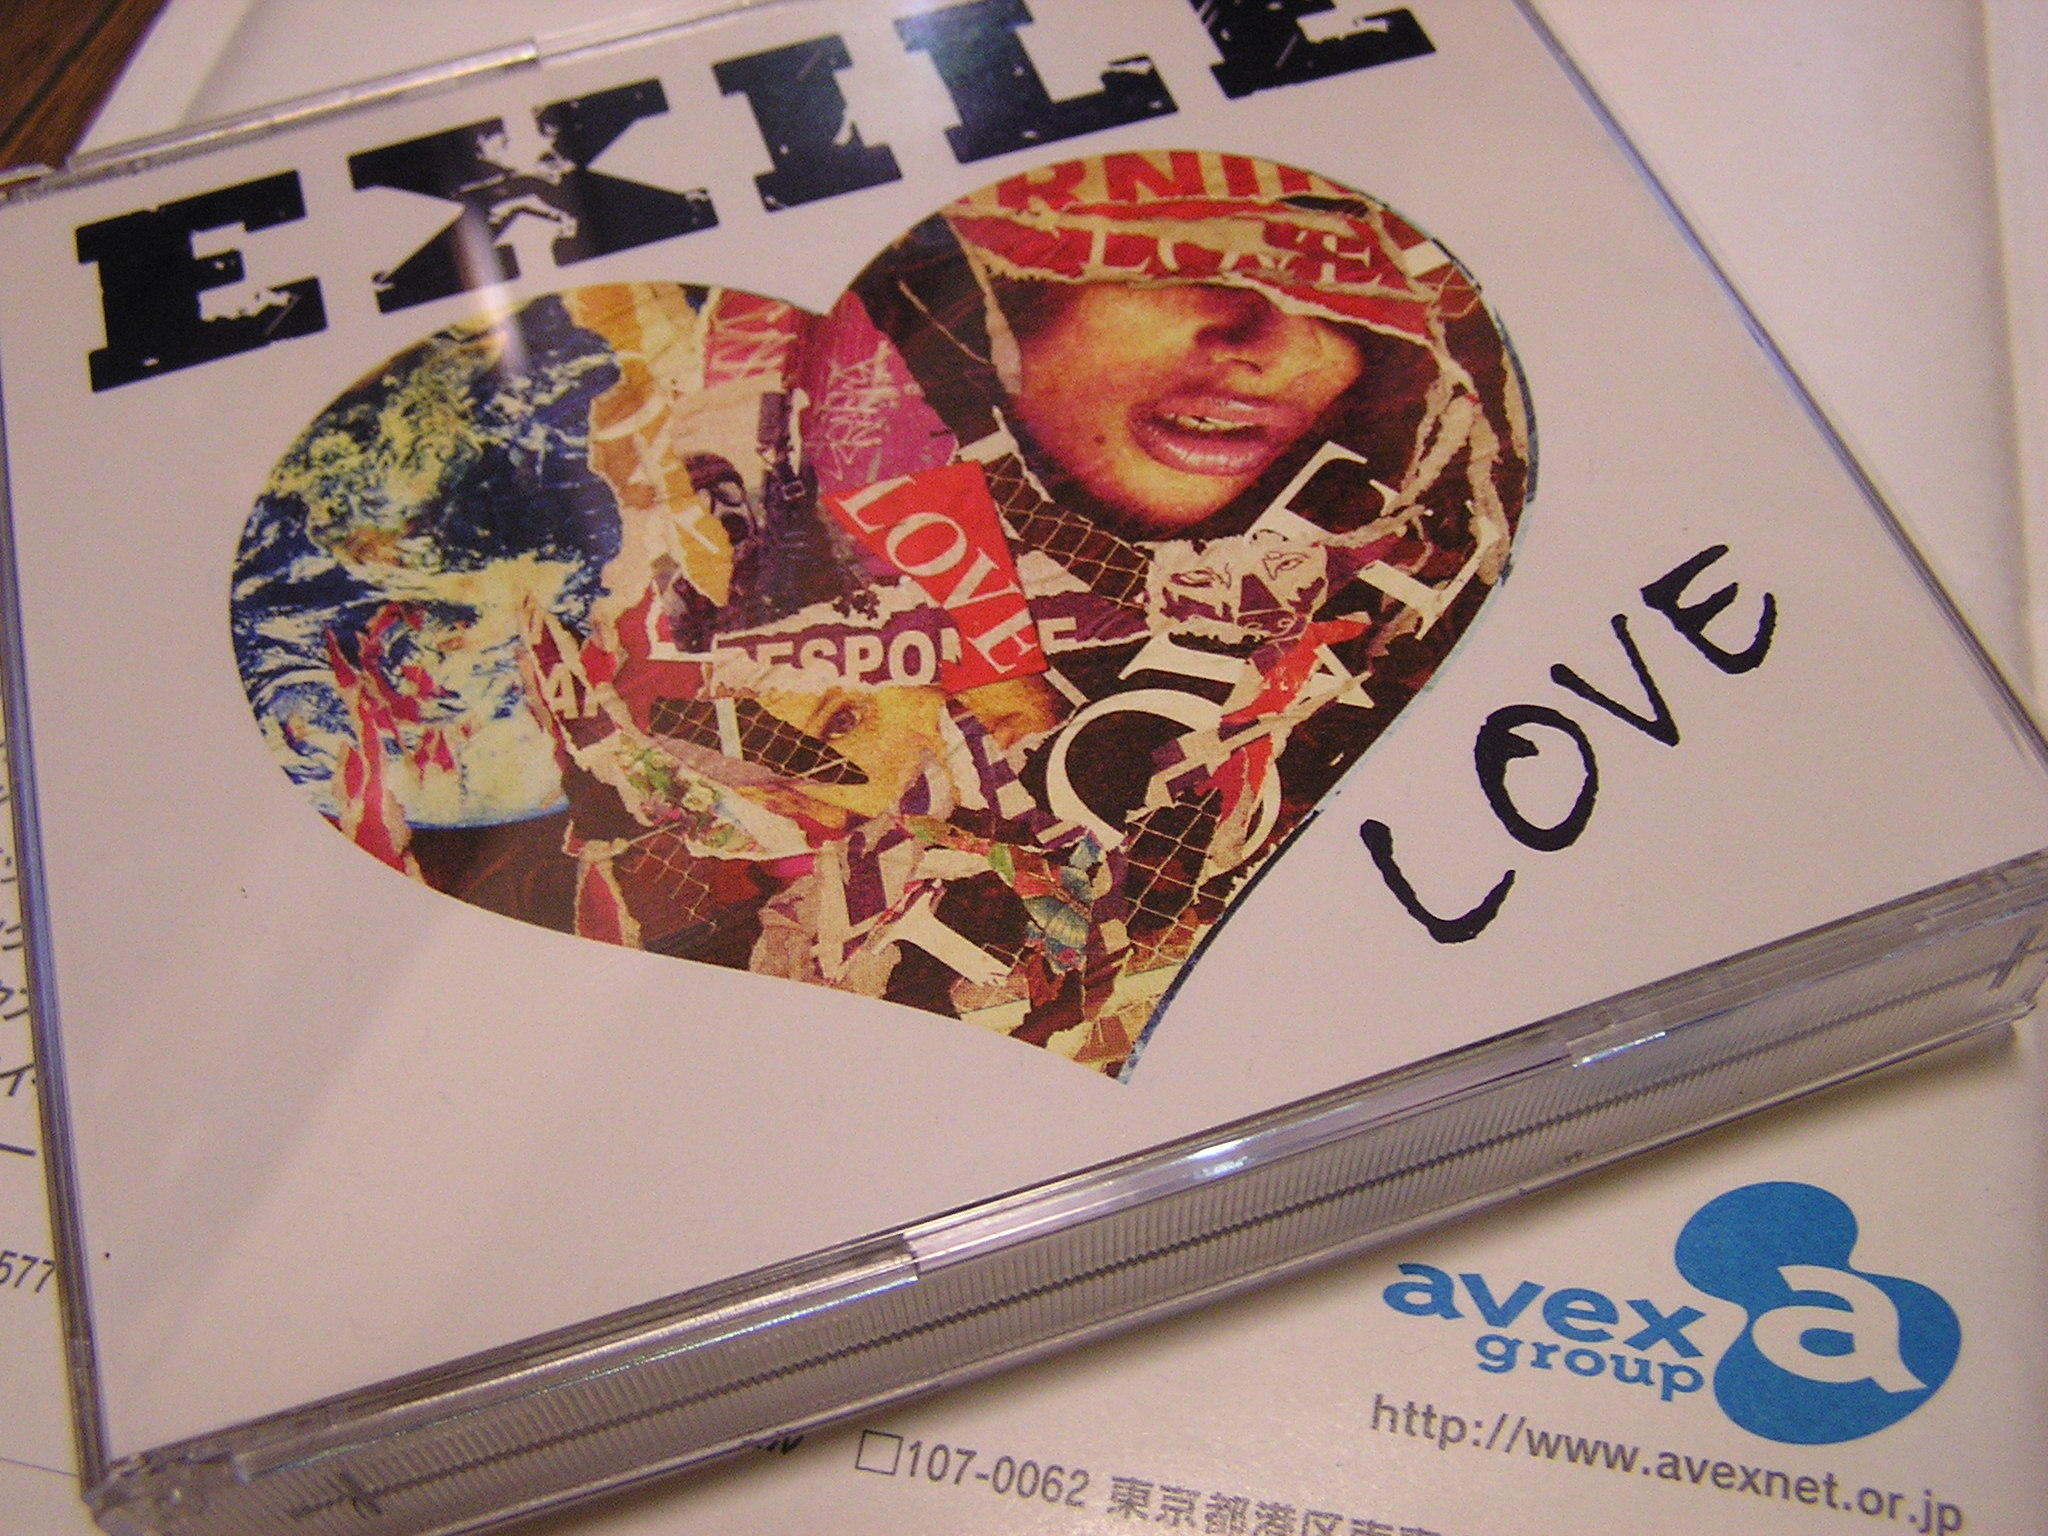 「EXILE LOVE」視聴中